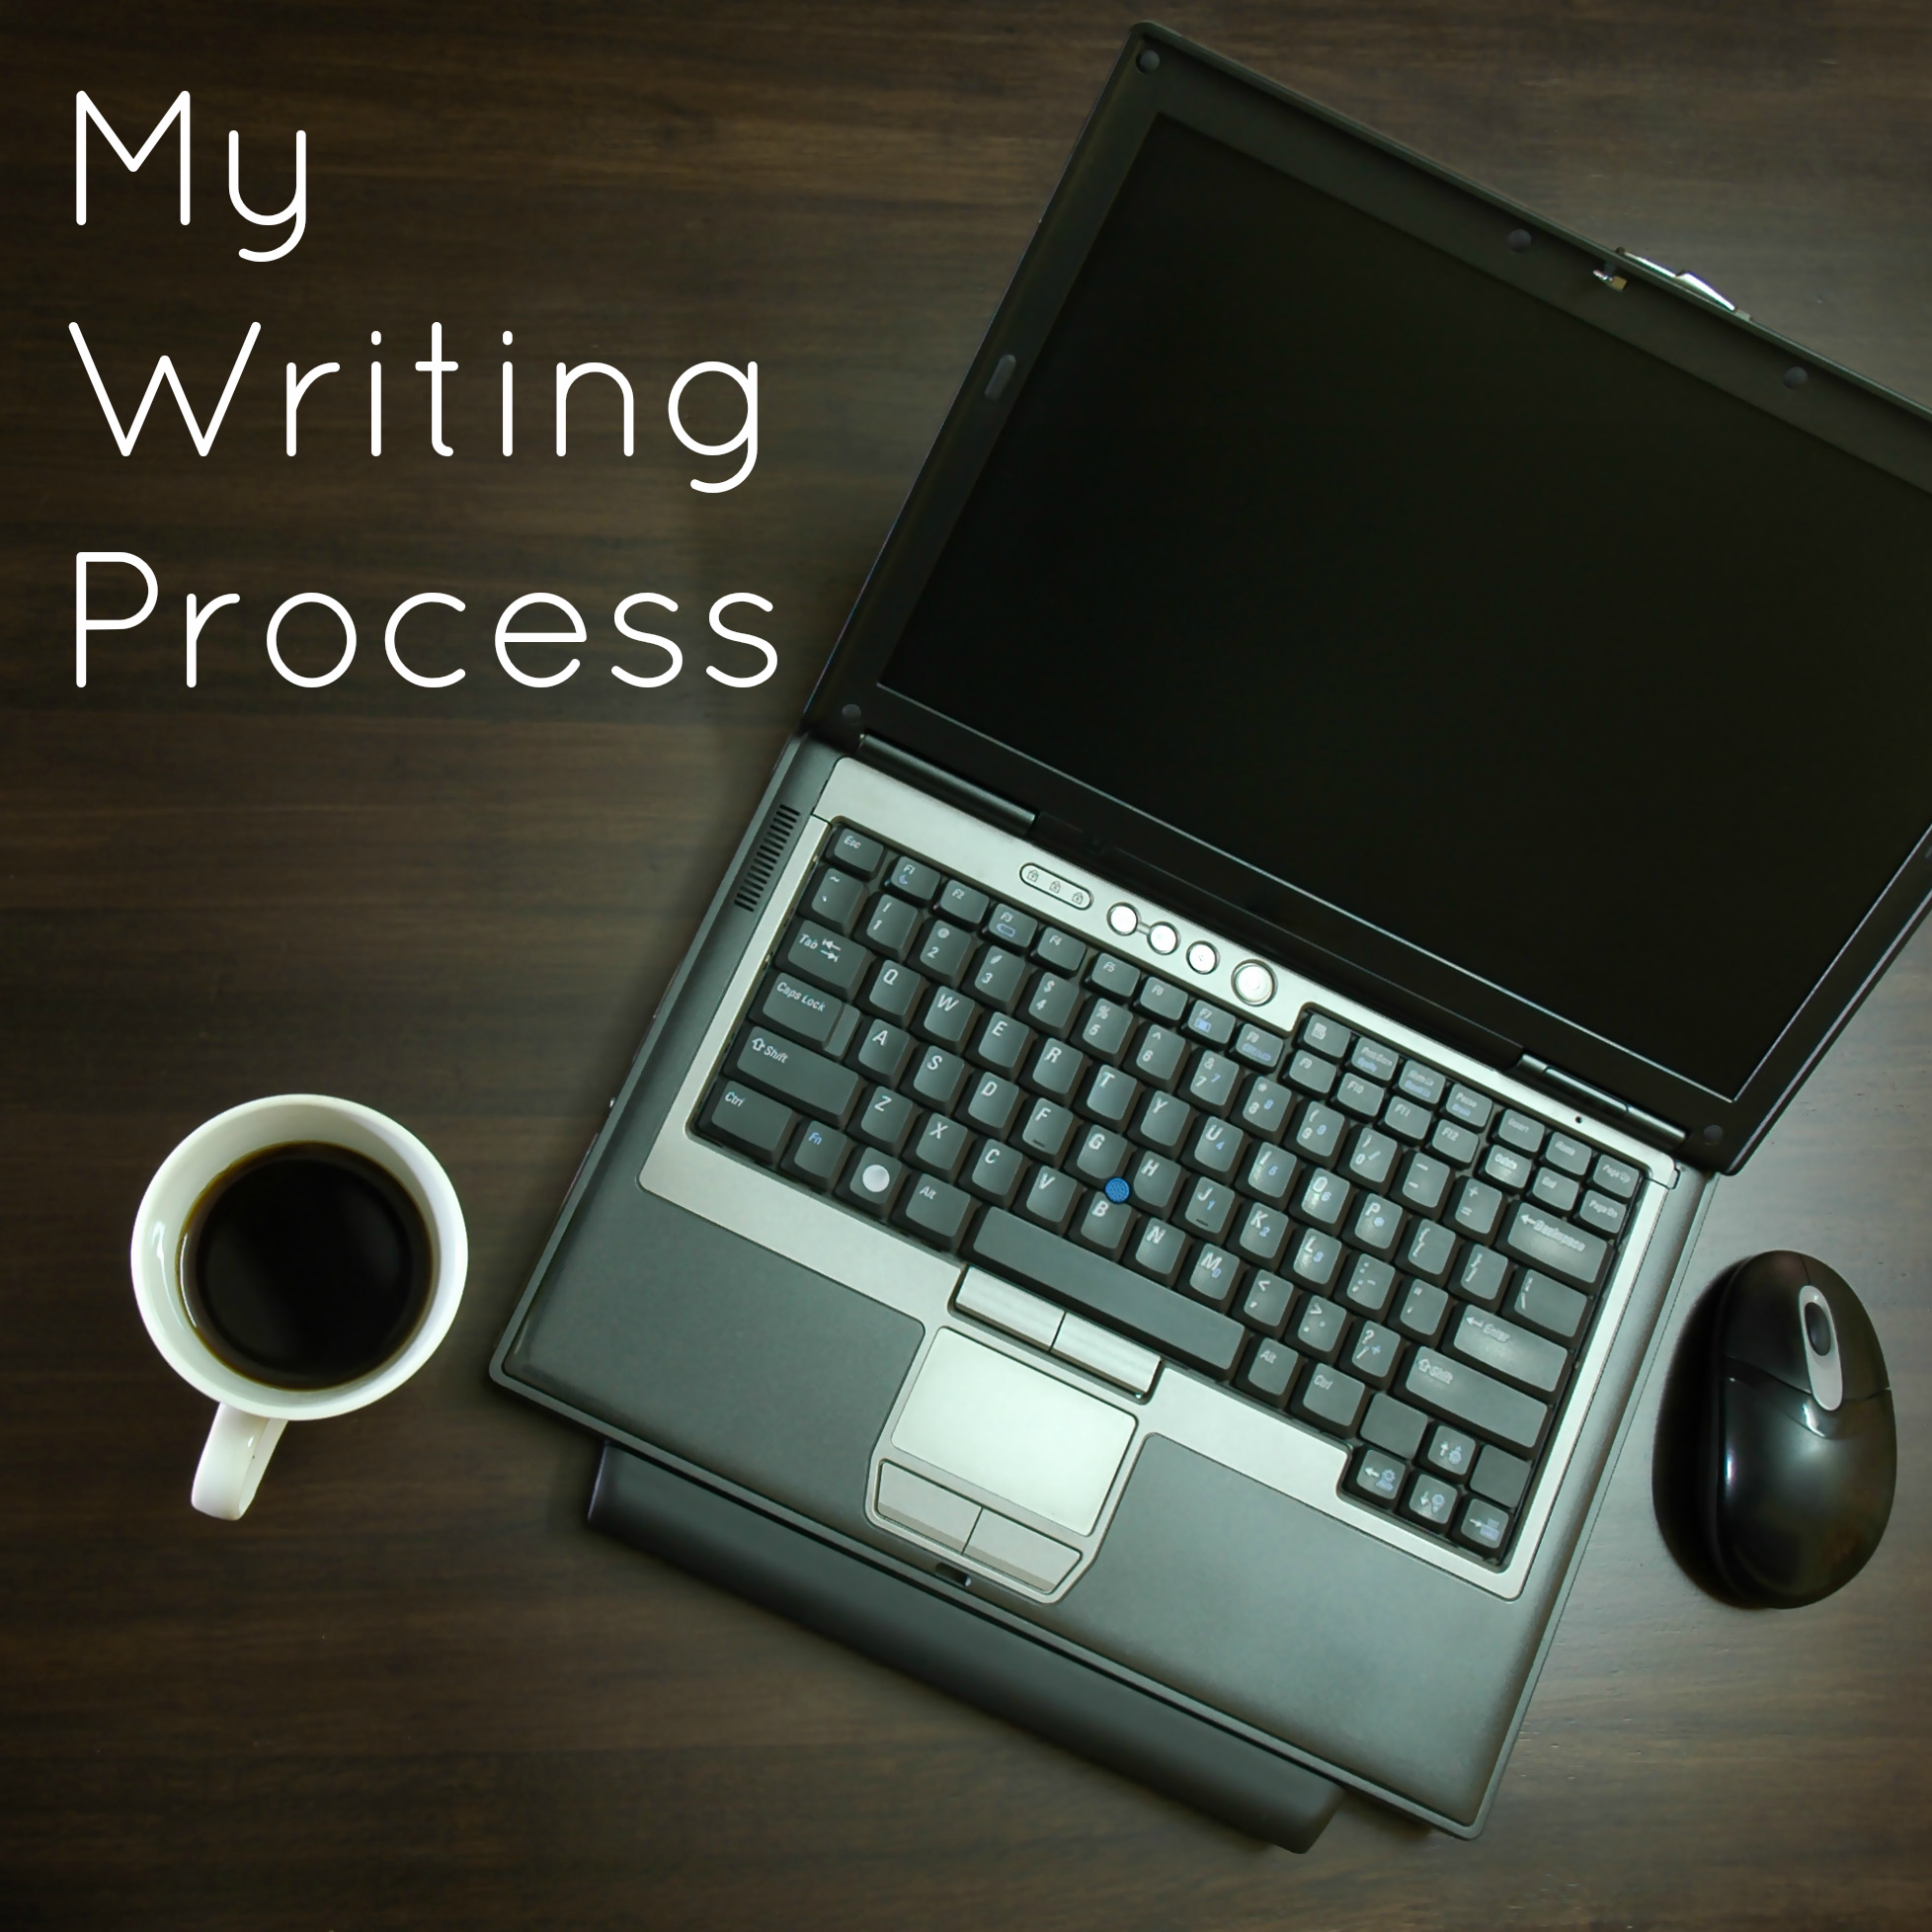 my writing process essay My writing process is a life long journey, and this is the advice i give as a tutor i know the steps it takes me to write a finished paper, i know the steps might be different for every writer remember a writer must learn to walk be for they can run.